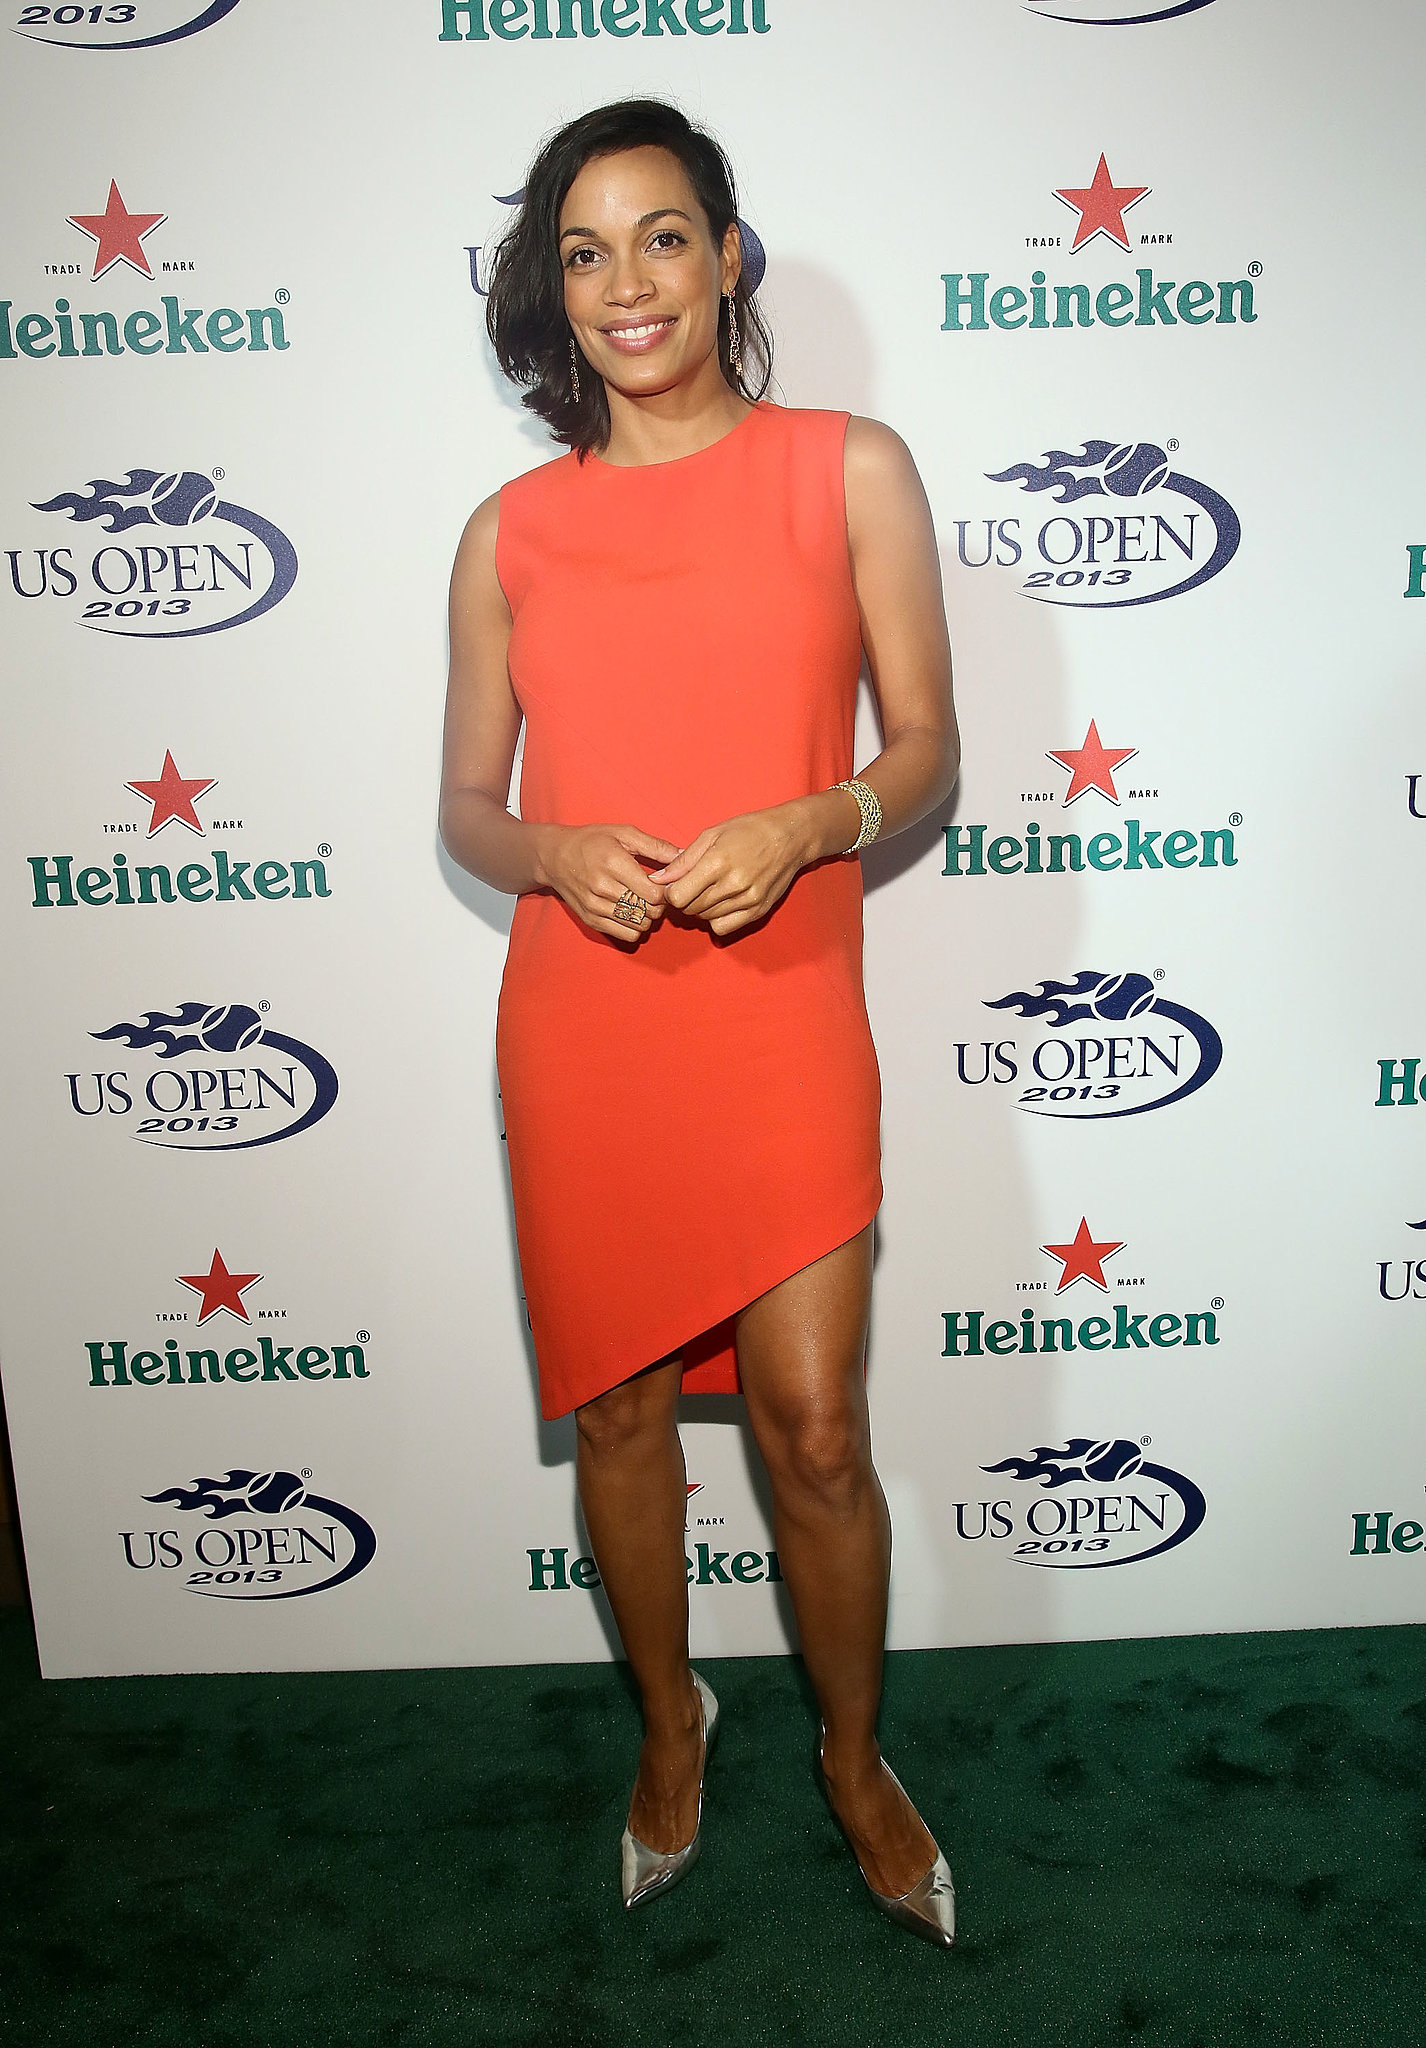 Rosario Dawson got fresh with an orange dress and silver metallic pumps at the 2013 US Open Kick-Off party in NYC.